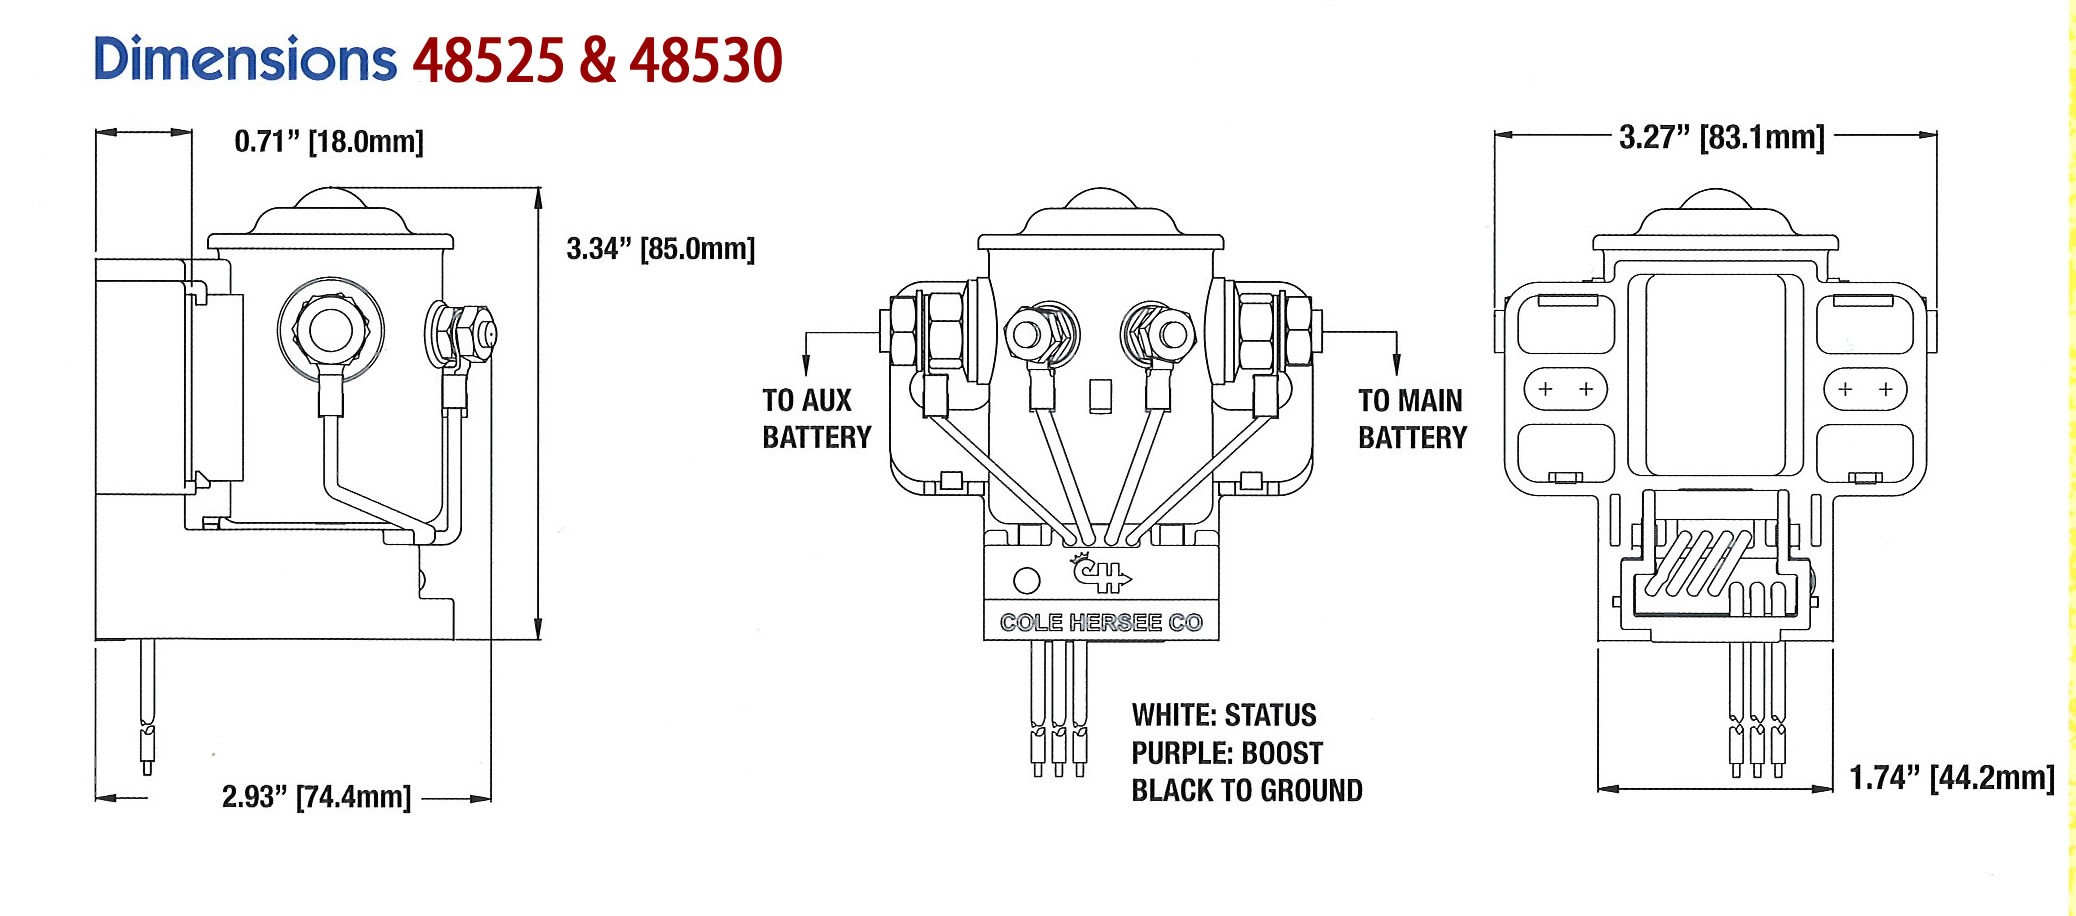 8FF Dual Battery Solenoid Wiring Diagram | Wiring LibraryWiring Library